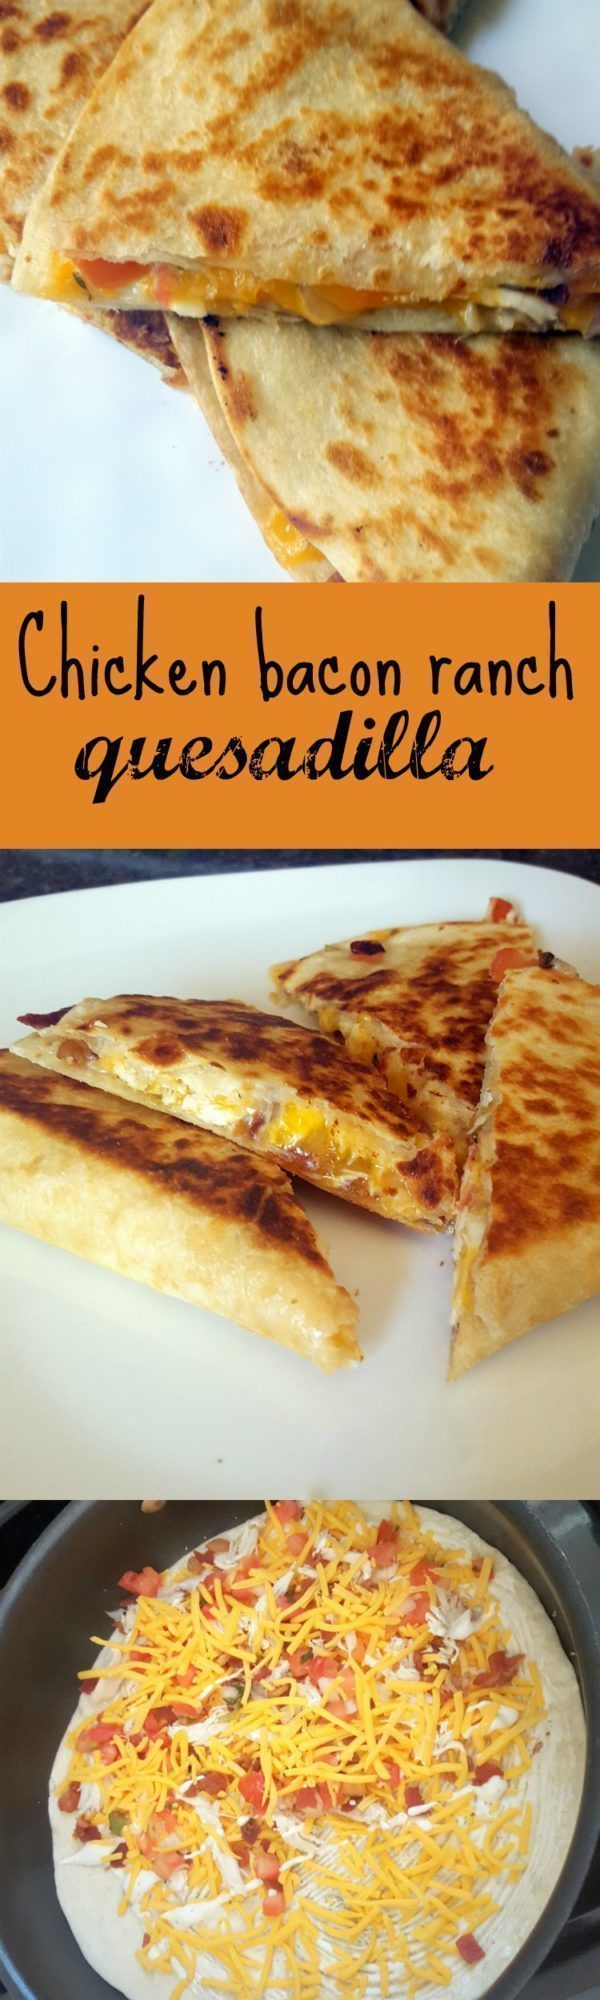 Blue apron quesadilla